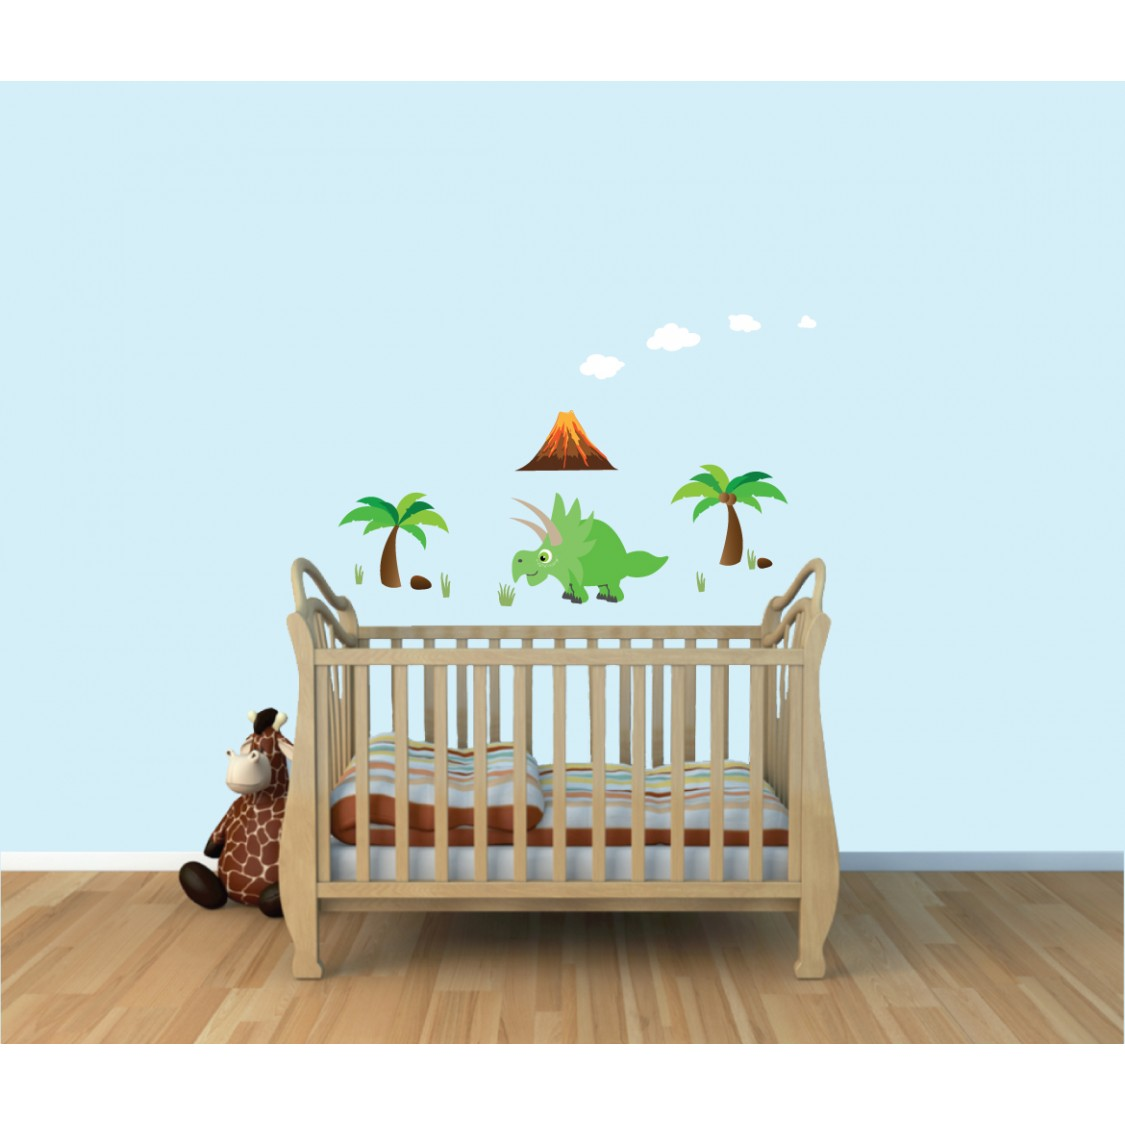 Childrens Bedroom Murals With Dinosaur Wall Stickers For Kids Rooms